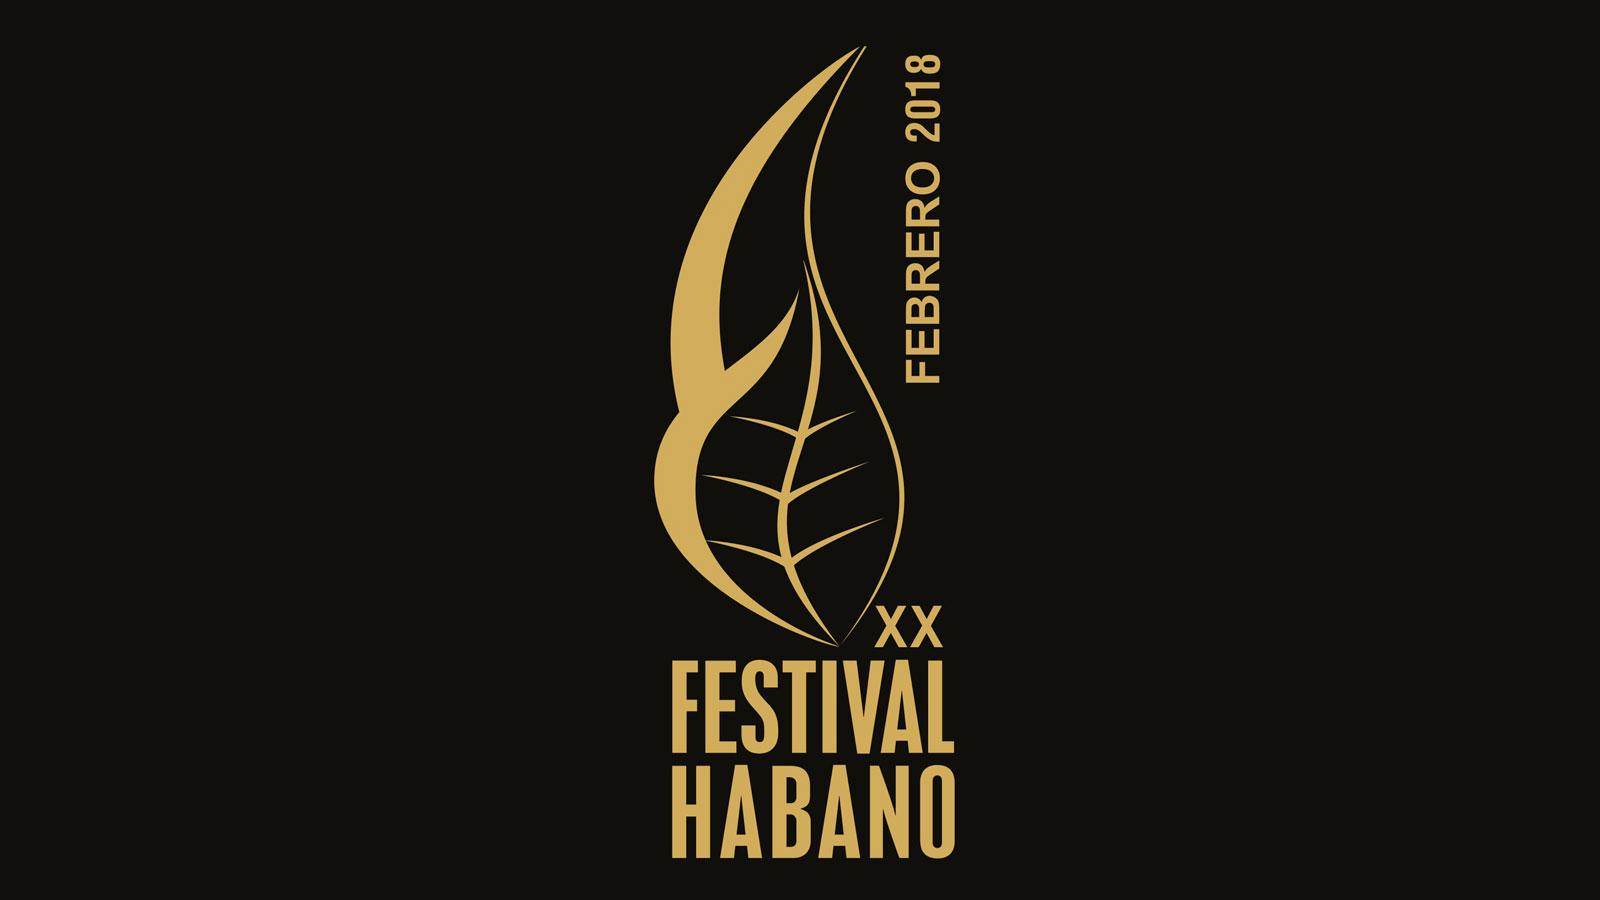 Dates For The 2018 Habanos Festival